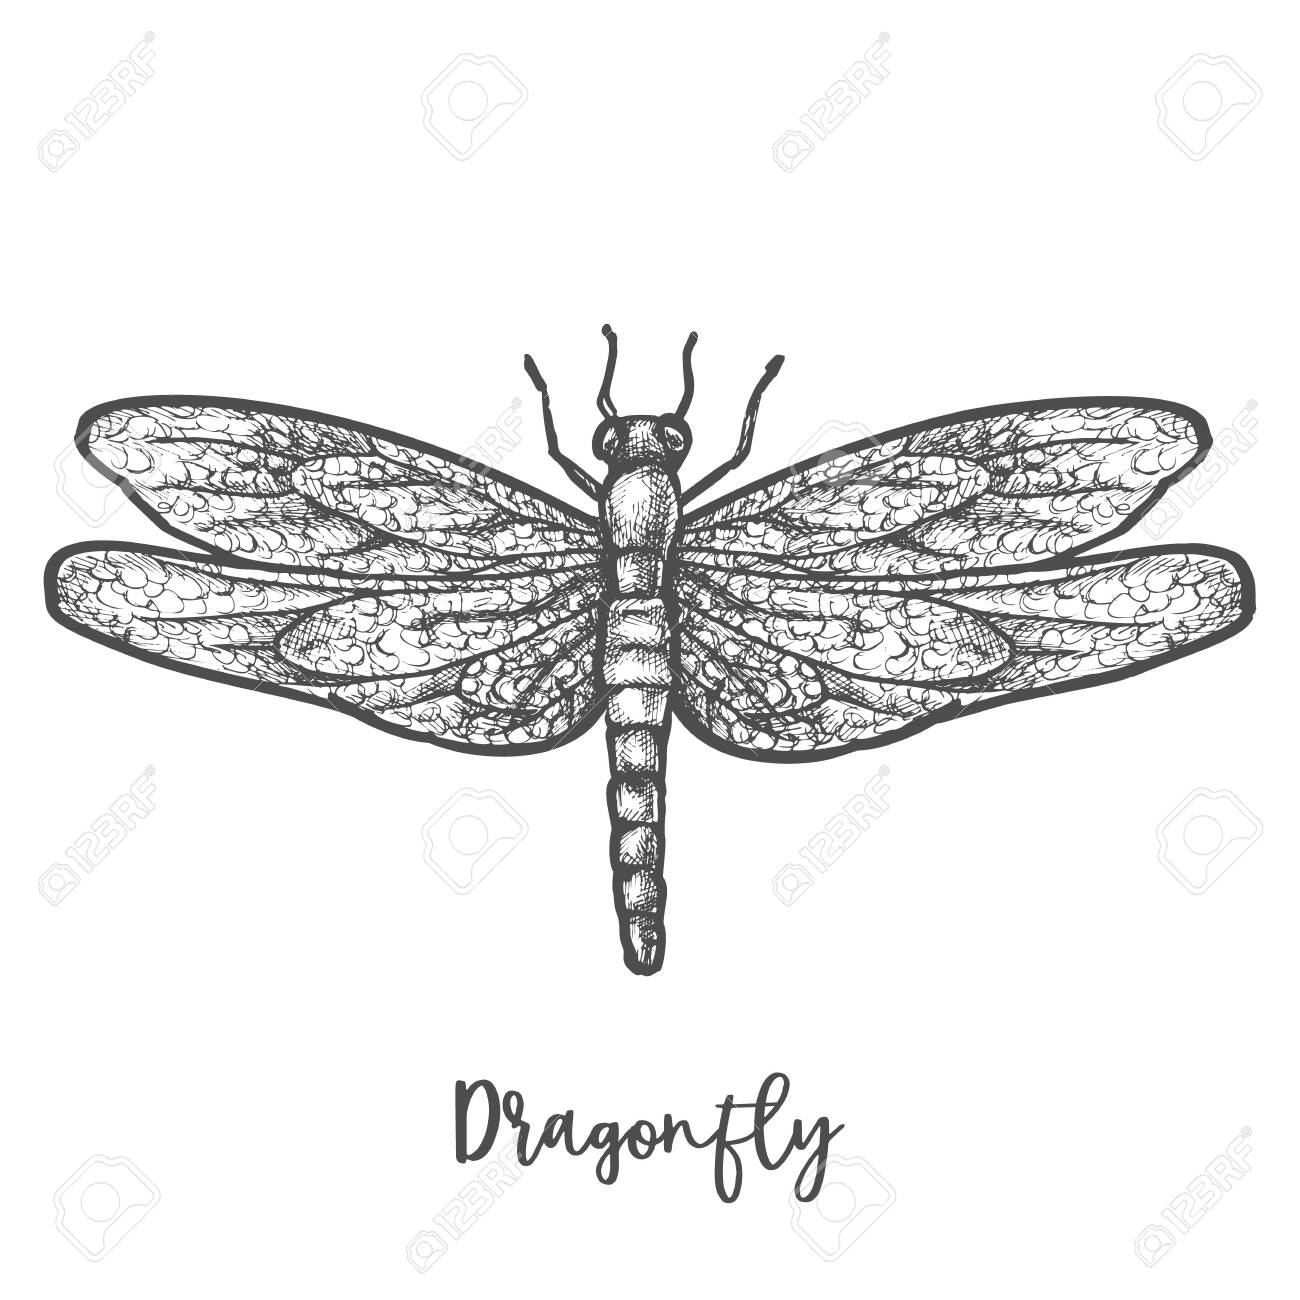 Engraved dragonfly or flying insect sketch vector - 150406367